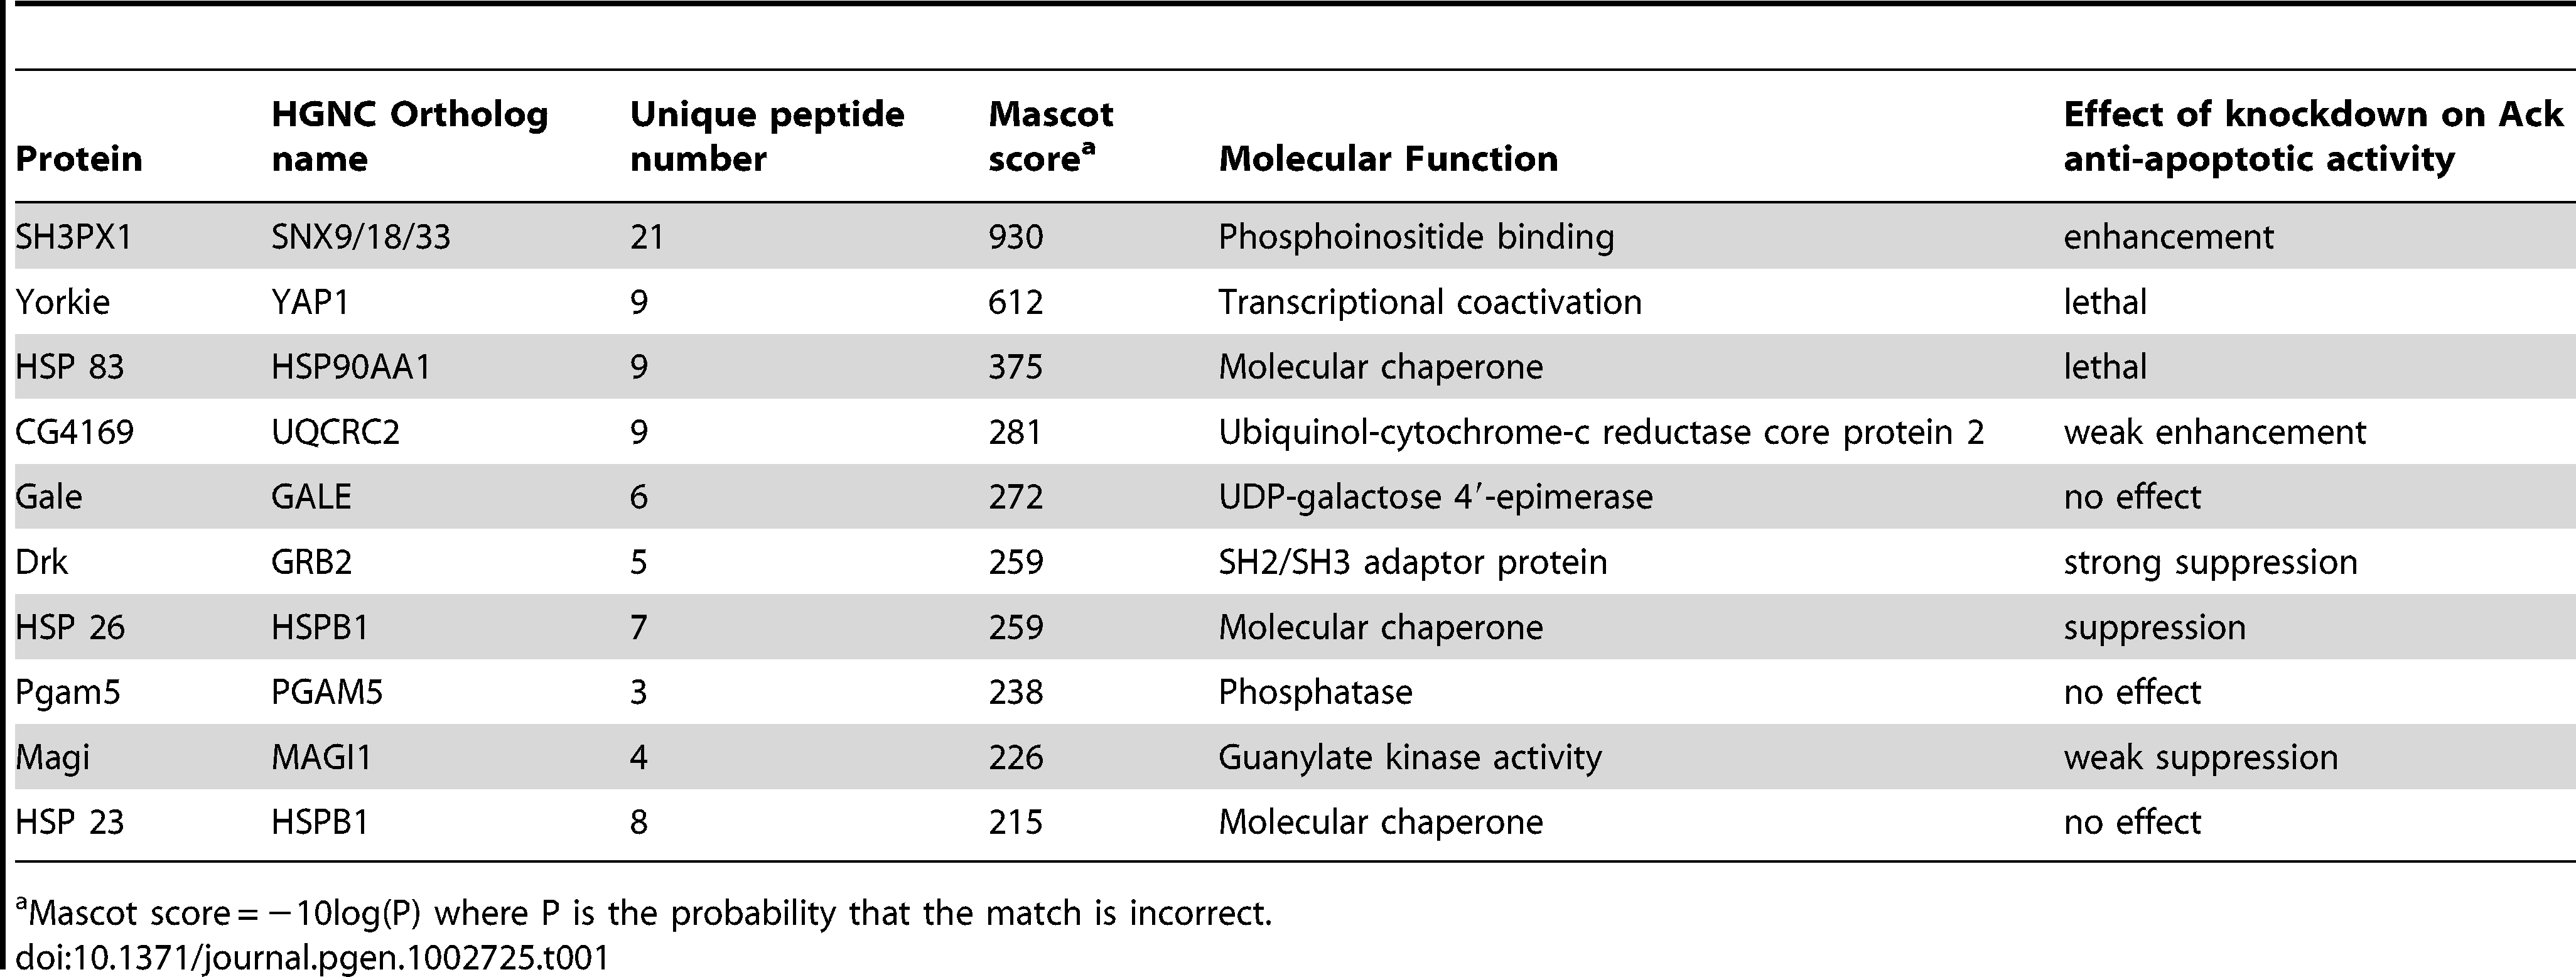 Top ten Ack interacting proteins based on their Mascot score.